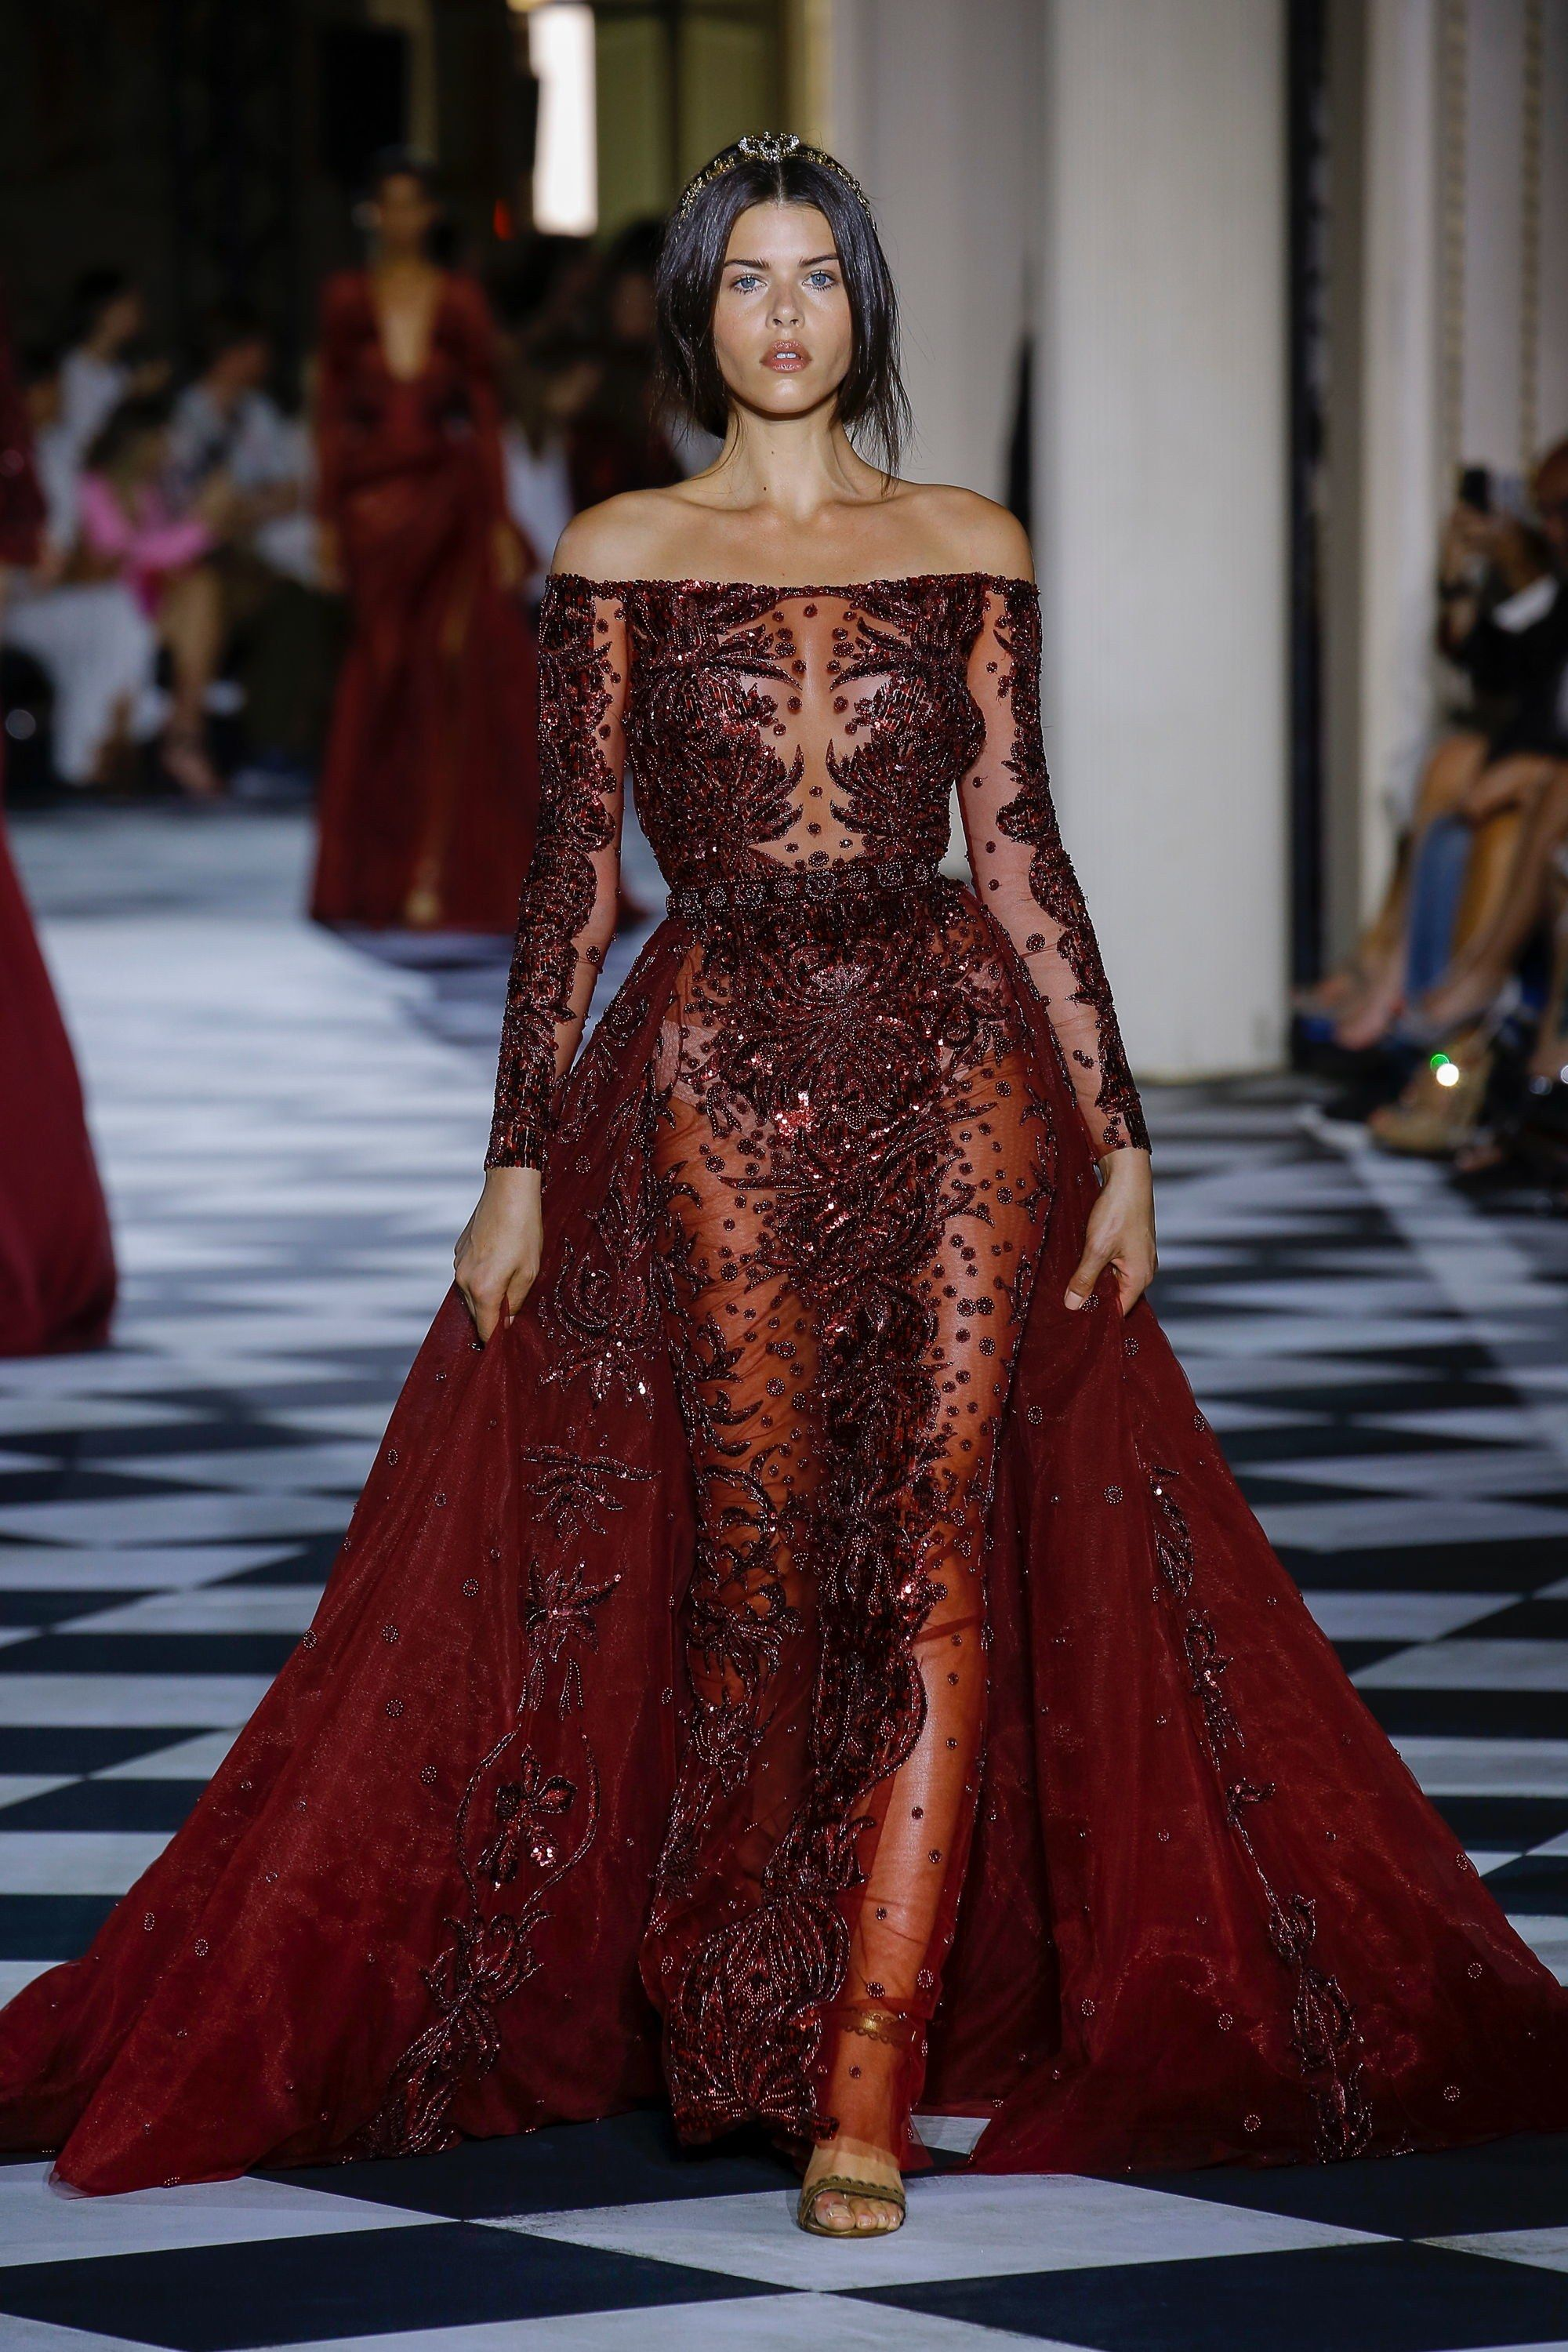 d1bf603c1 Zuhair Murad Fall 2018 Couture Collection - Vogue  ZuairMurad  apparel   clothes  designerclothing  styletrends  styleinspiration  fashion  dress   gown ...